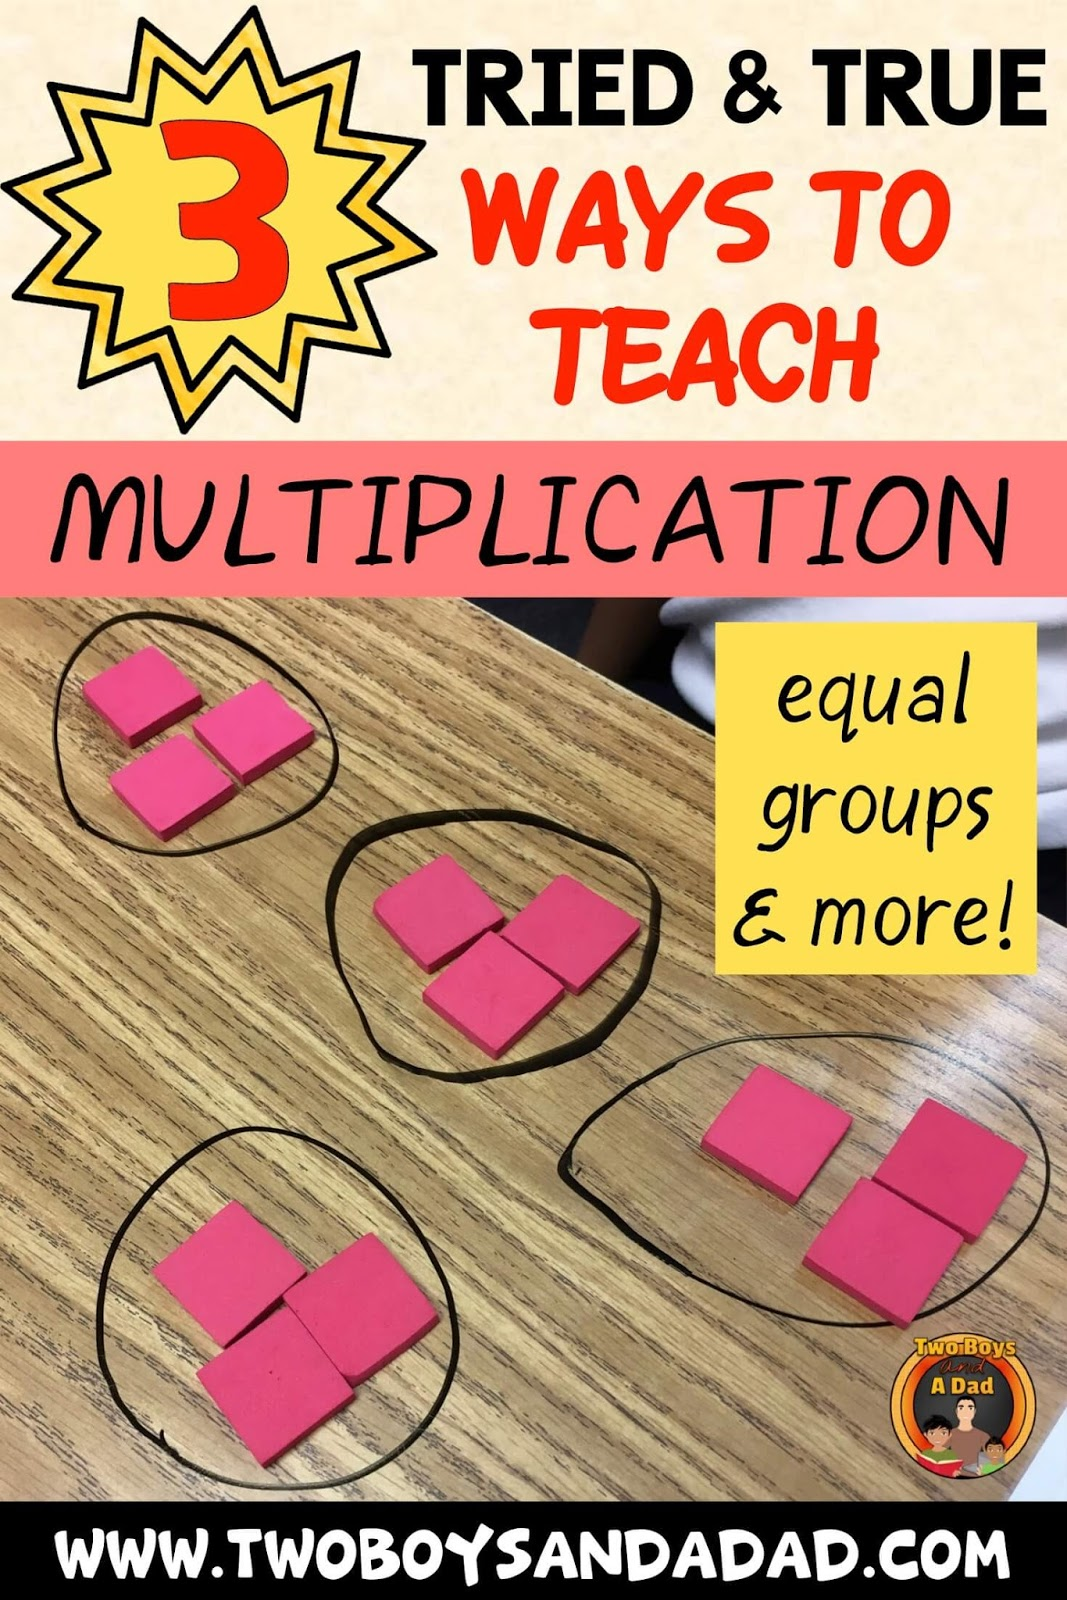 How to teach the concept of multiplication